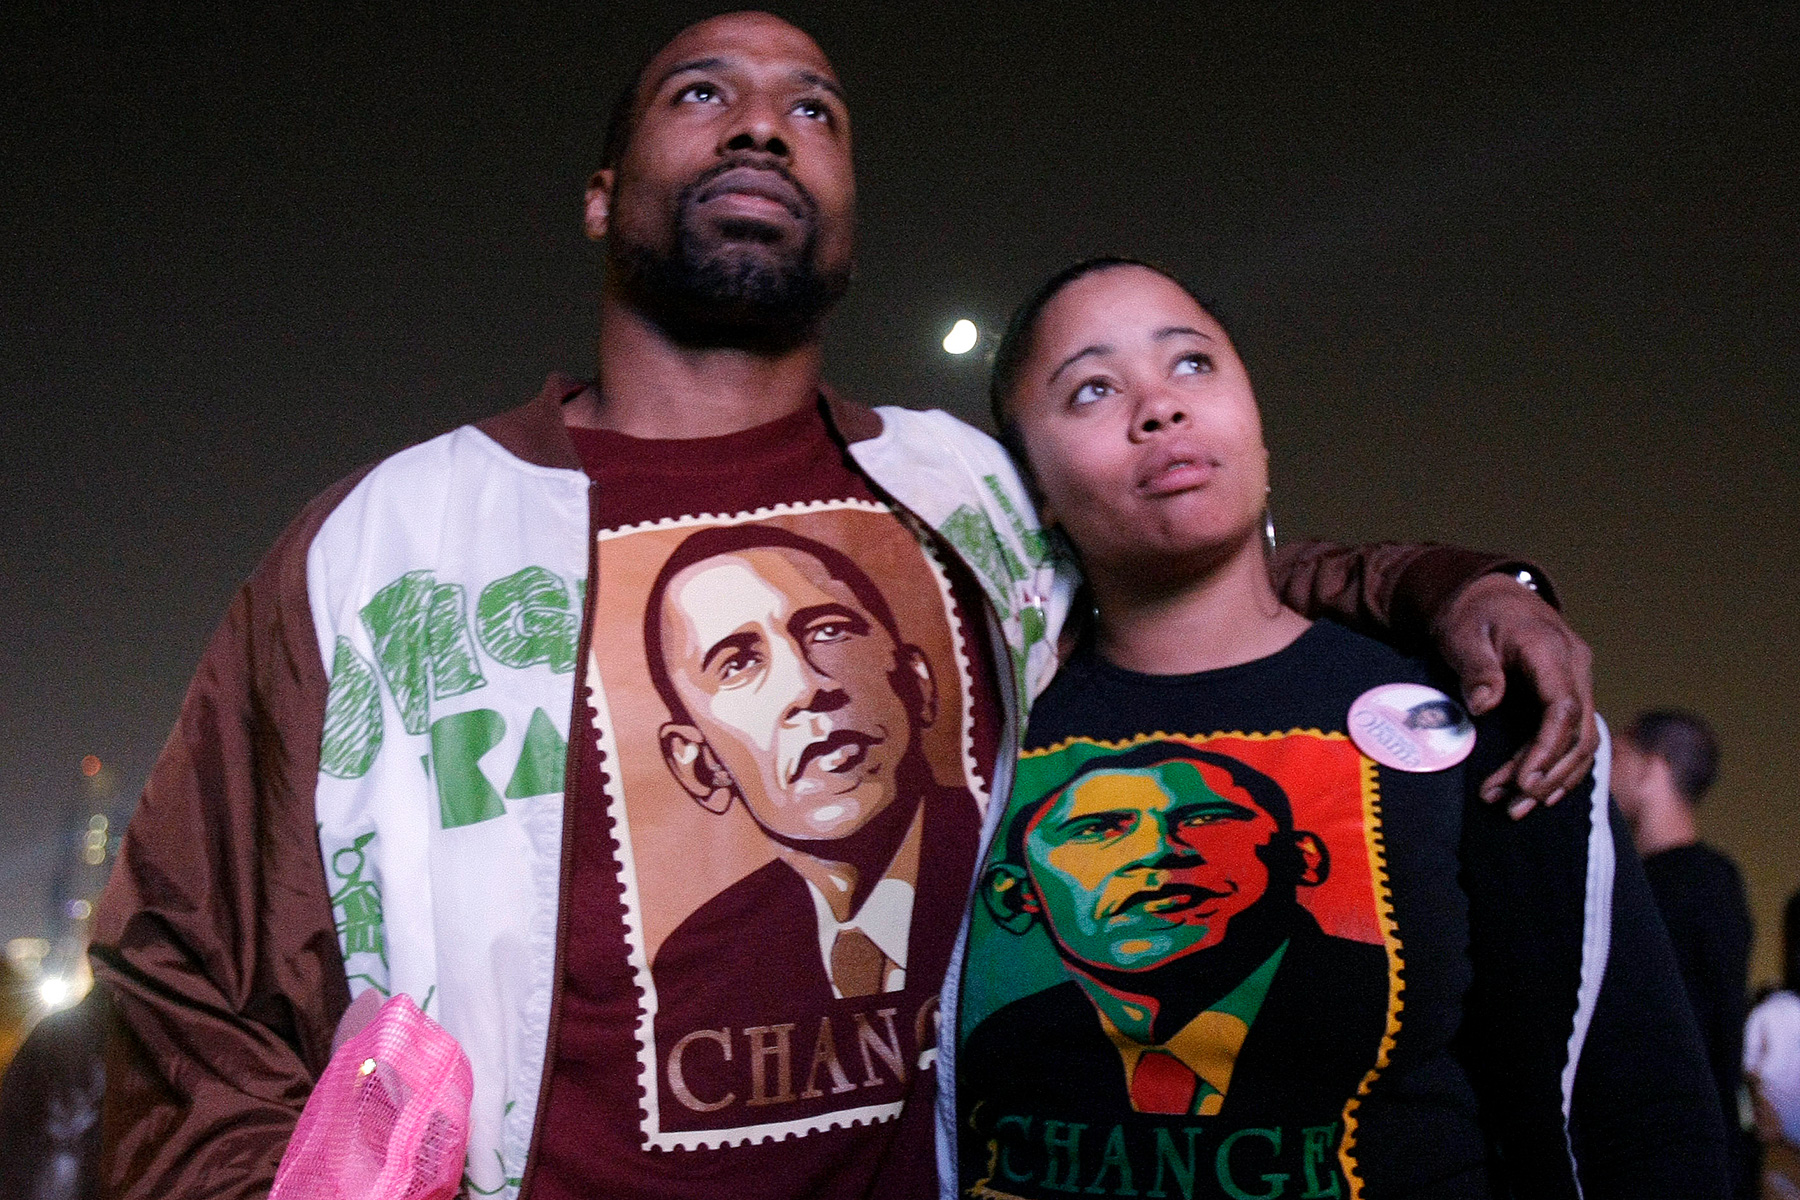 Gregory McGee, left, and Jakeeta Stubblefield from Chicago, supporters of Democratic presidential candidate Sen. Barack Obama, D-Ill, watch election returns on a big screen TV in an overflow area of Grant Park Nov. 4, 2008.